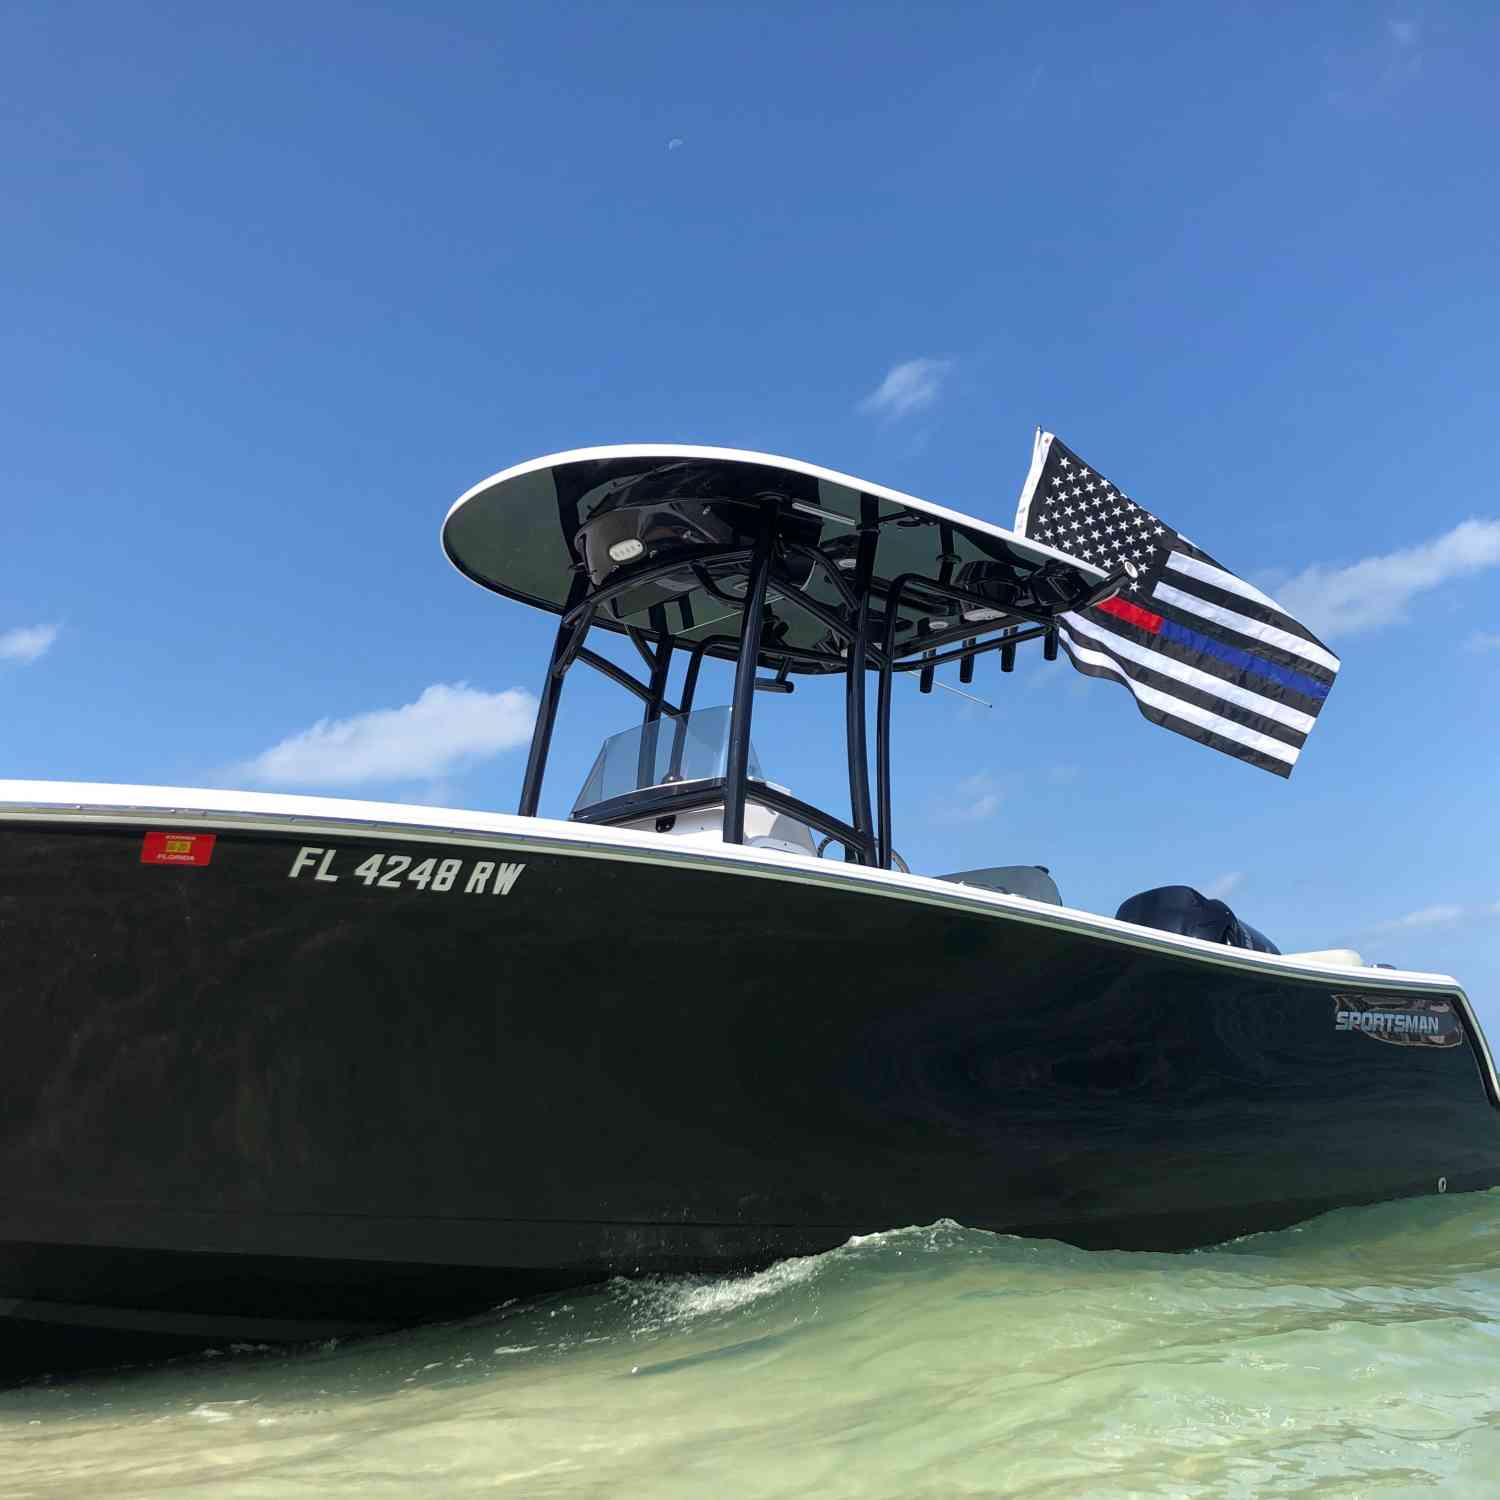 Title: Shady Liberty - On board their Sportsman Heritage 231 Center Console - Location: Naples Florida. Participating in the Photo Contest #SportsmanJune2019